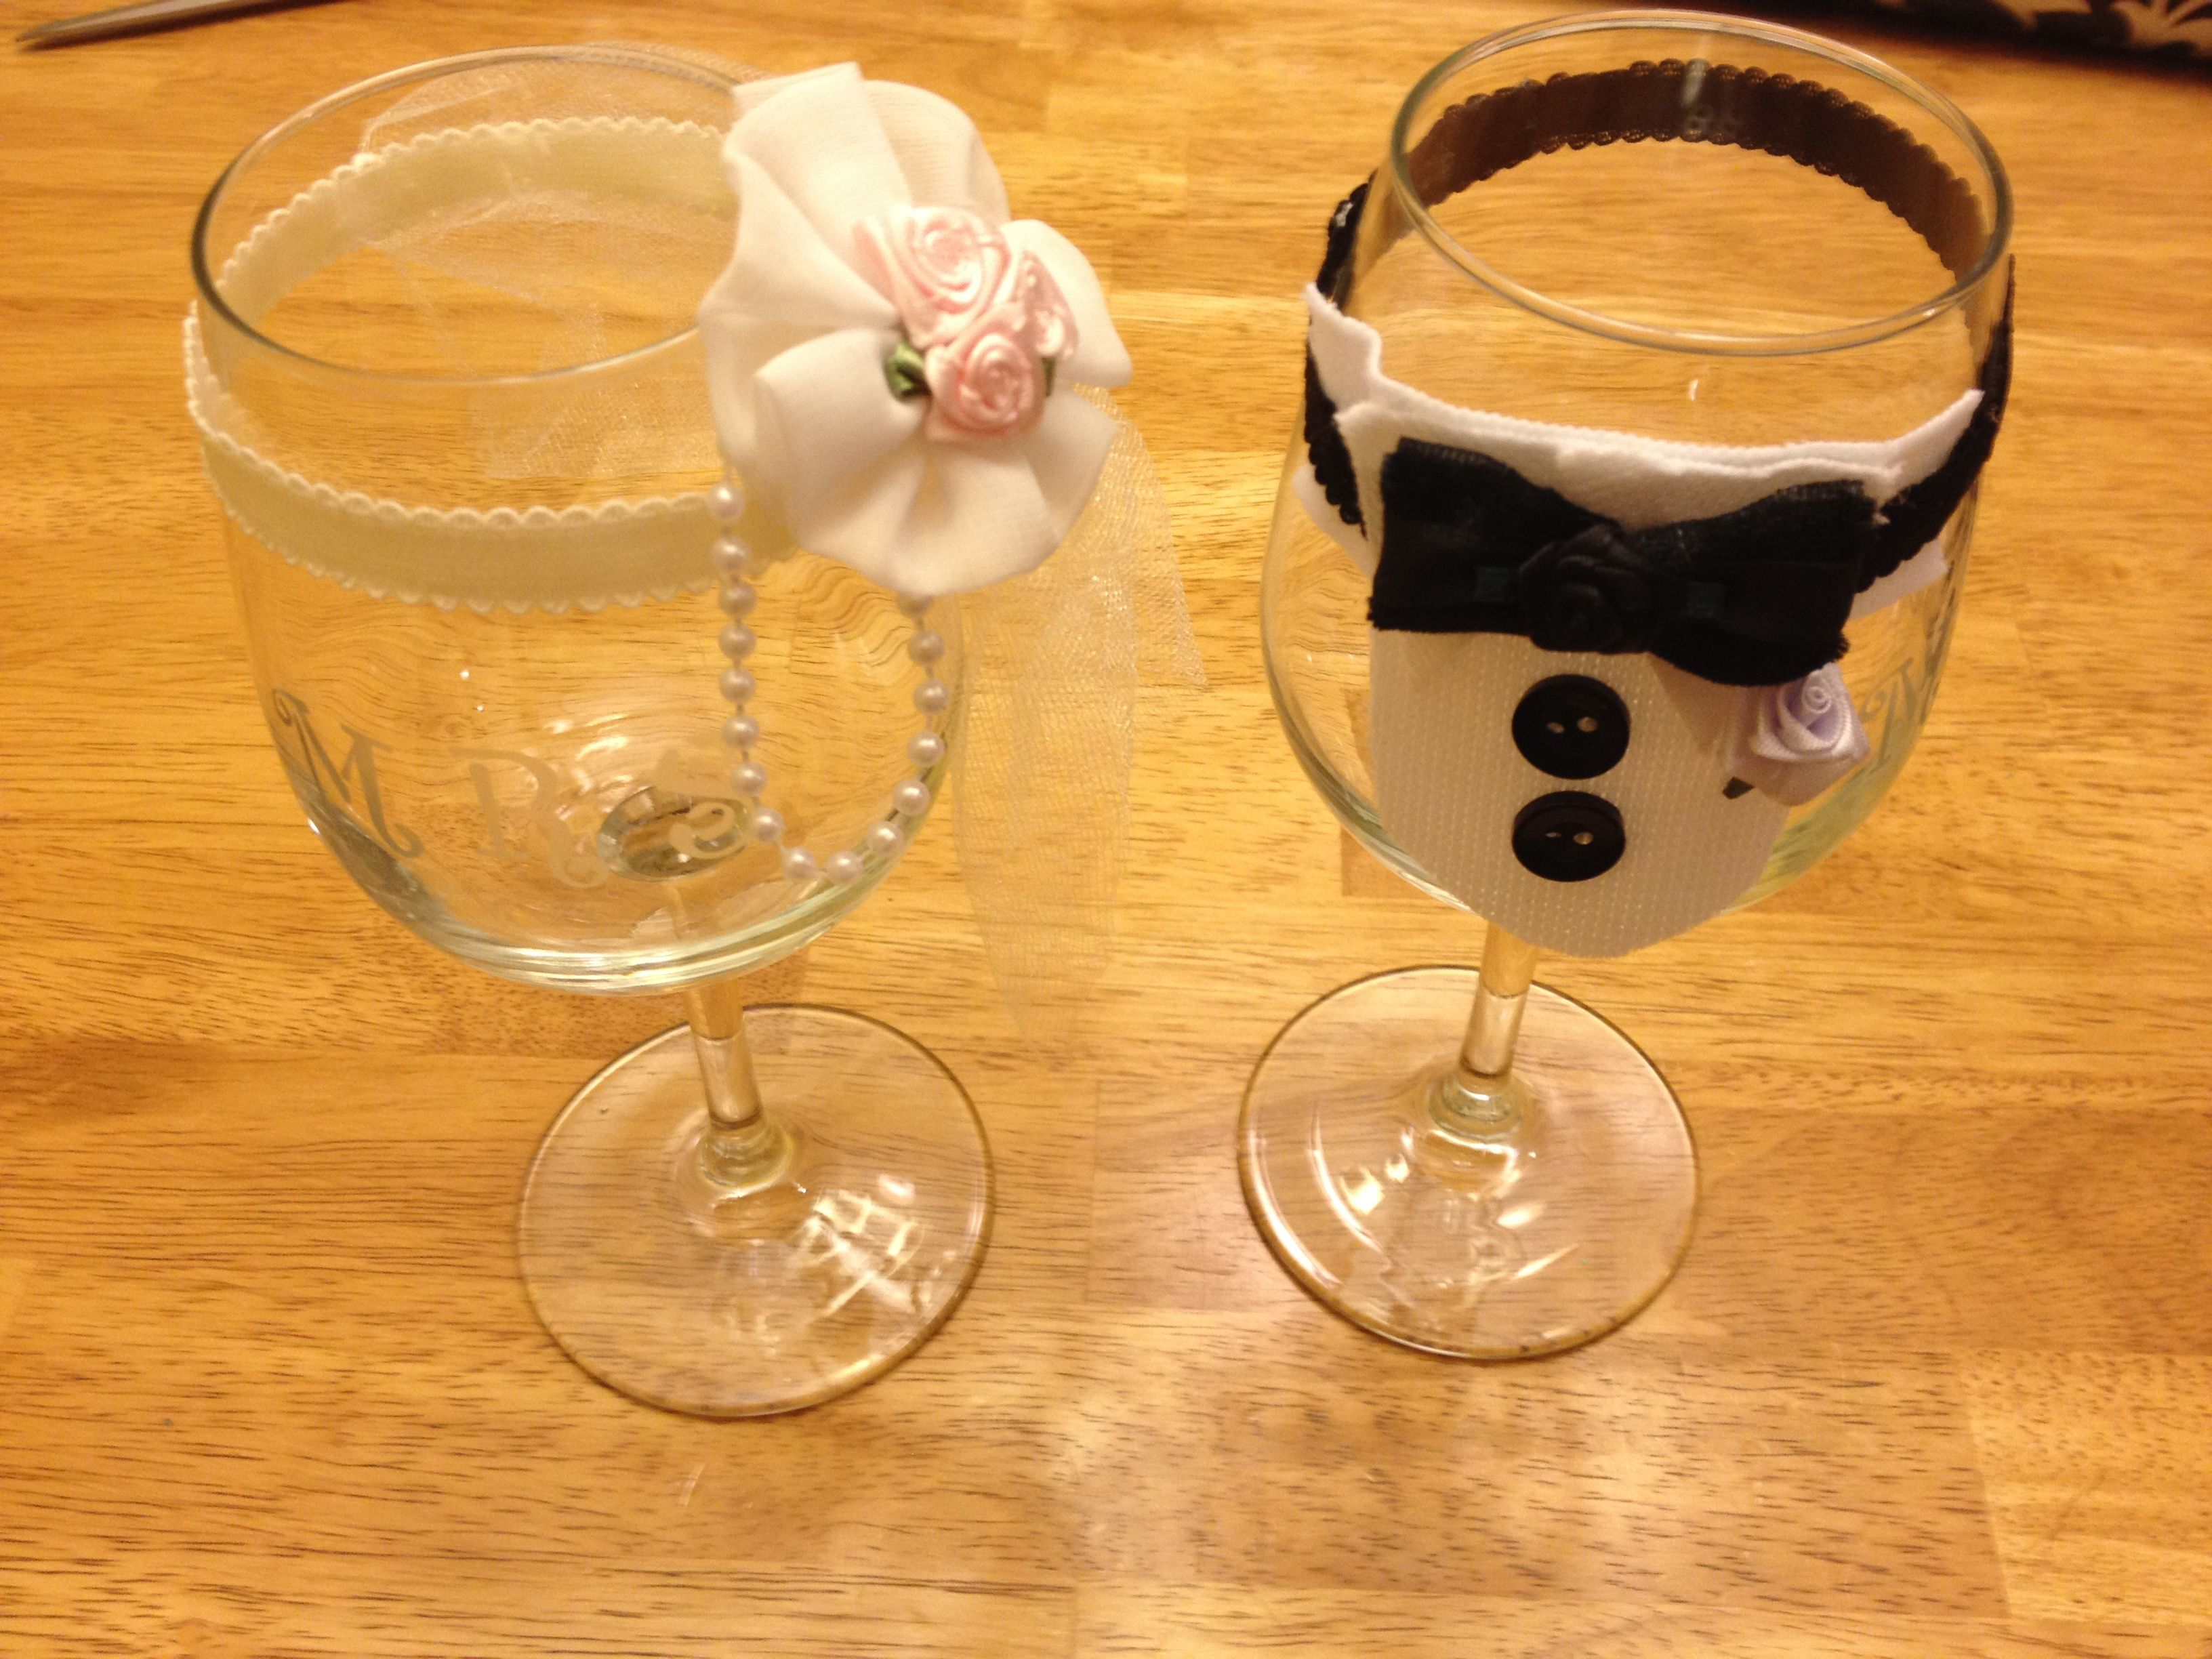 Diy Wedding Champagne Glasses Ideas Bride And Groom Decorated Wine Glasses Diy Etched With